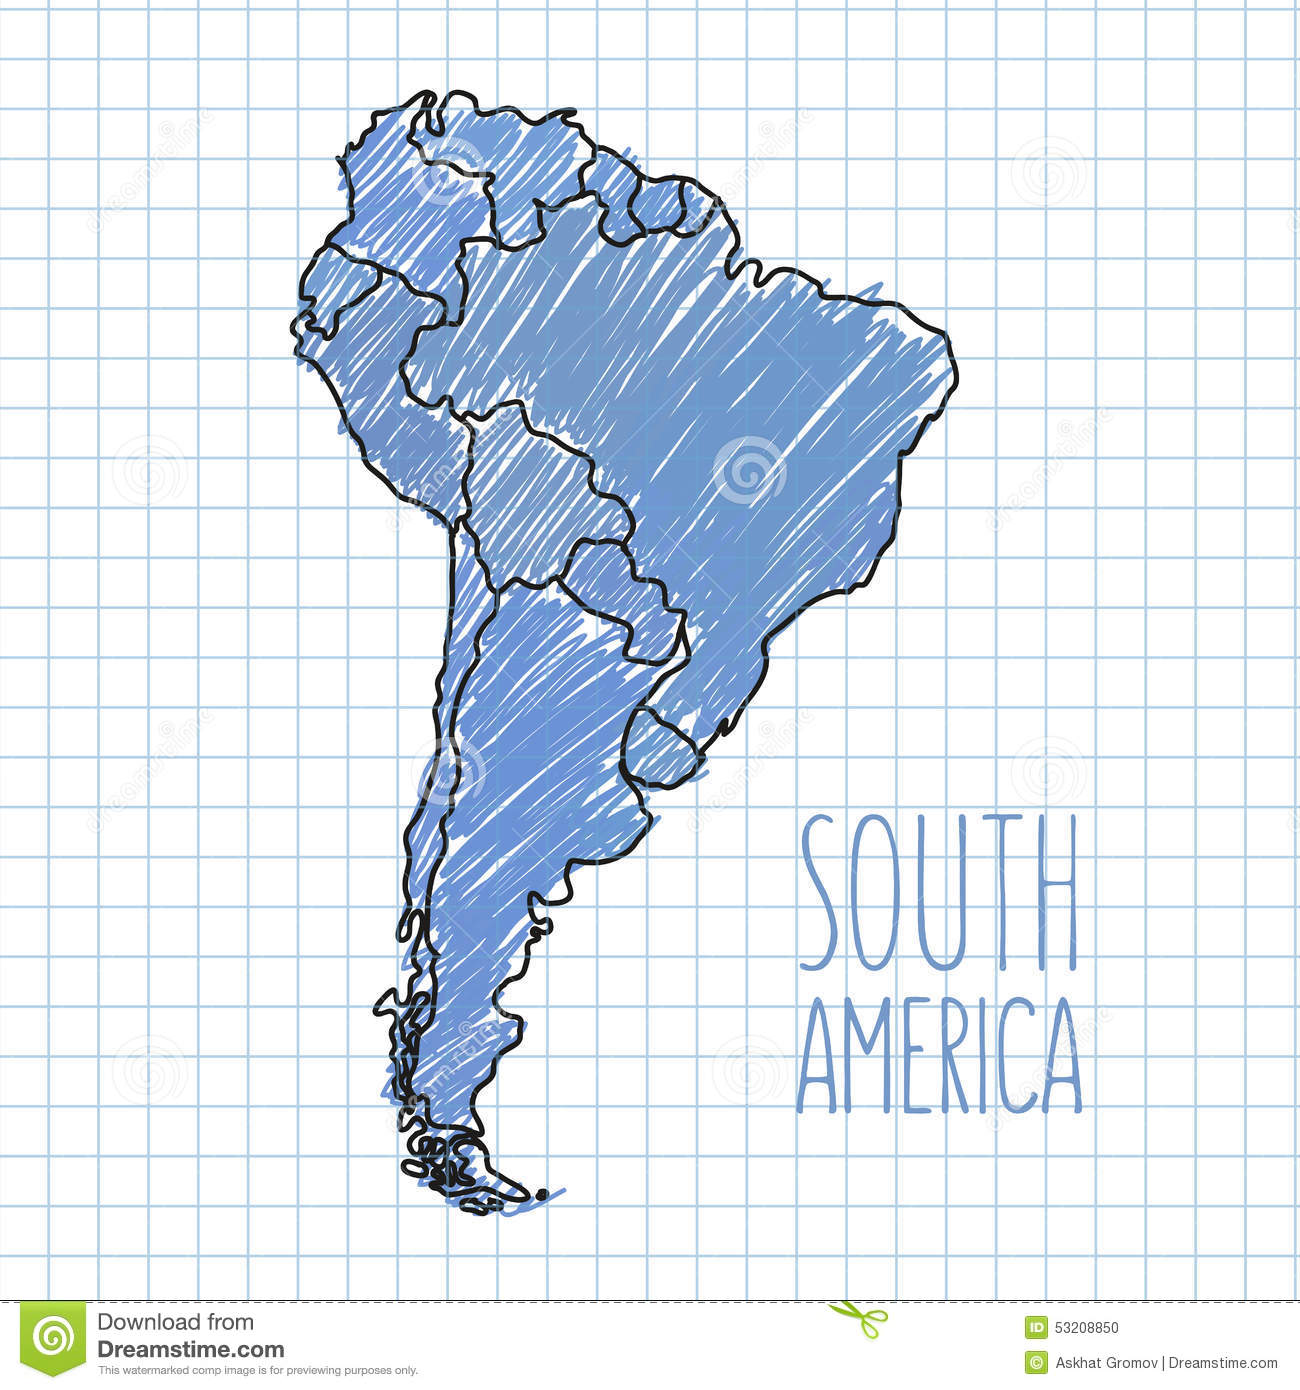 essay on south america Water pollution in south america essaysin today's world, water pollution is becoming a bigger issue in south america, as well as around the globe this problem exists all over south america due to the lack of laws and restrictions made and enforced by the governments in these countries.